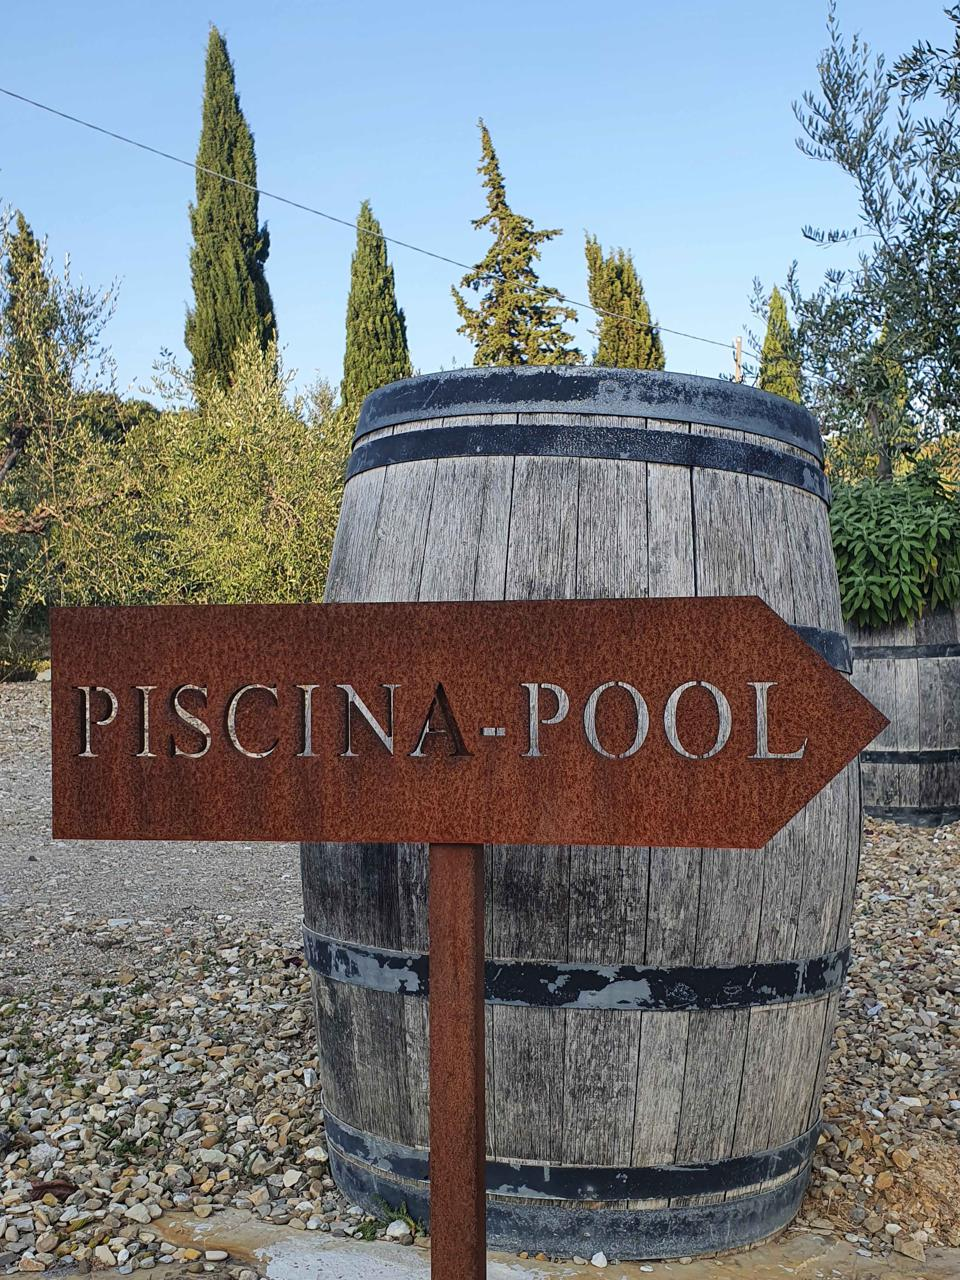 Step into the tubs of pool wine at the Il Palagio winemaker in Tuscany Italy's Panzano Chianti Classico